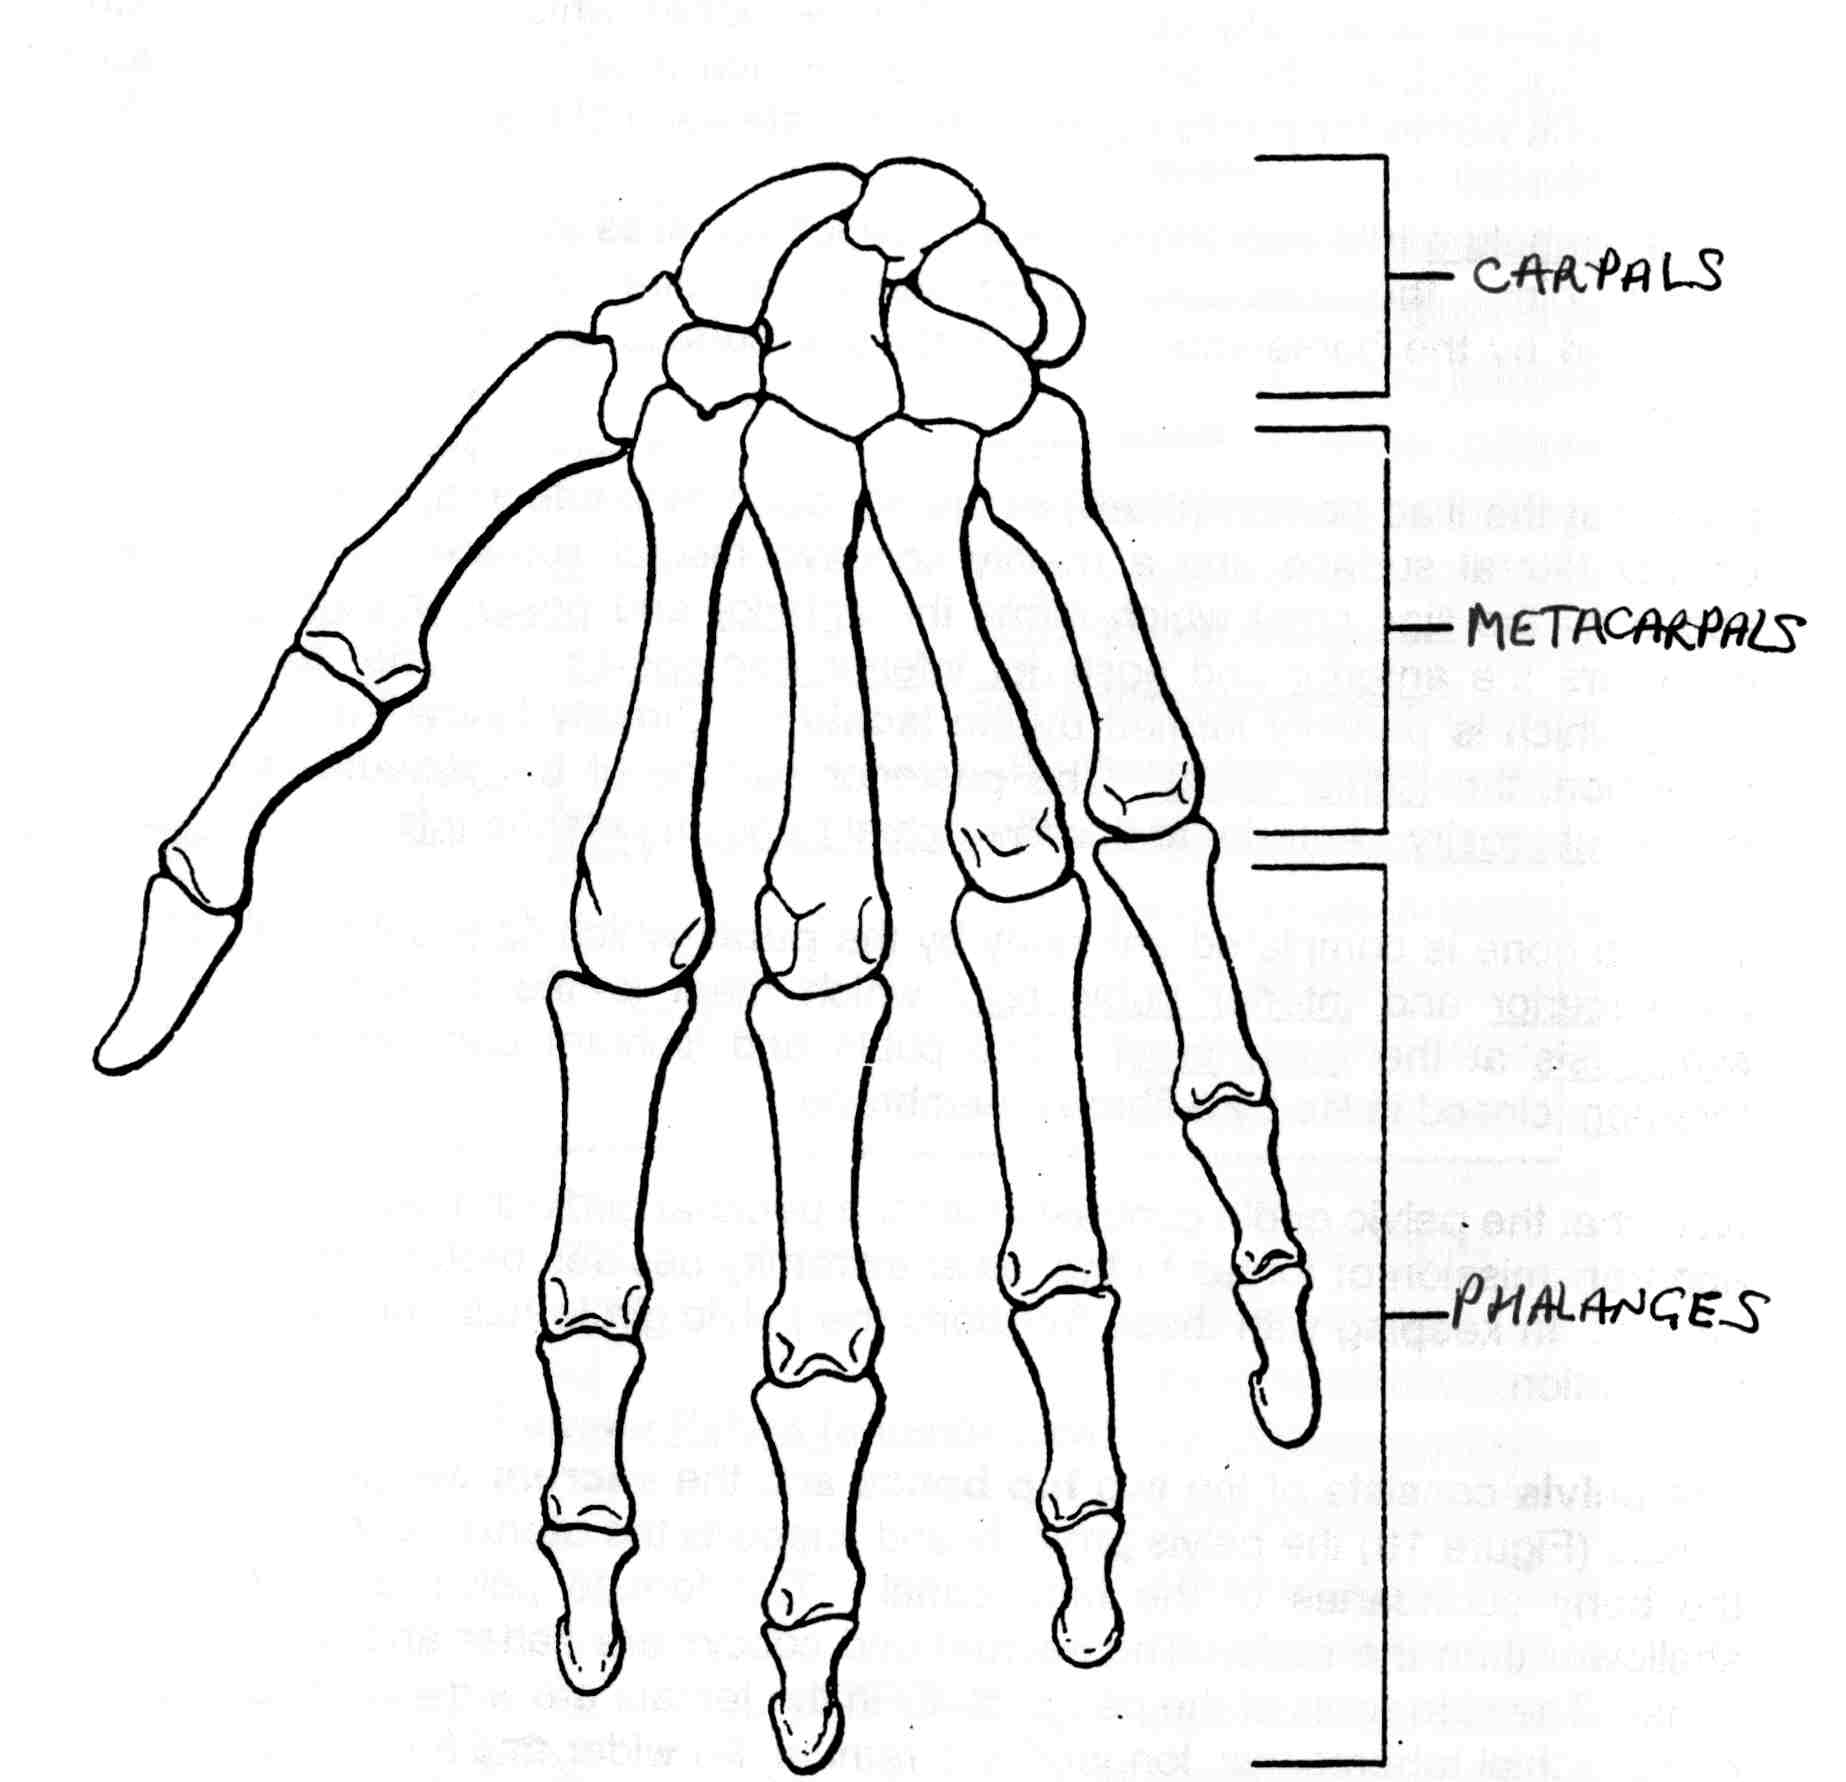 wrist and hand unlabeled diagram how to read electrical elementary wiring diagrams 13 best images of hip anatomy the worksheet sunflower